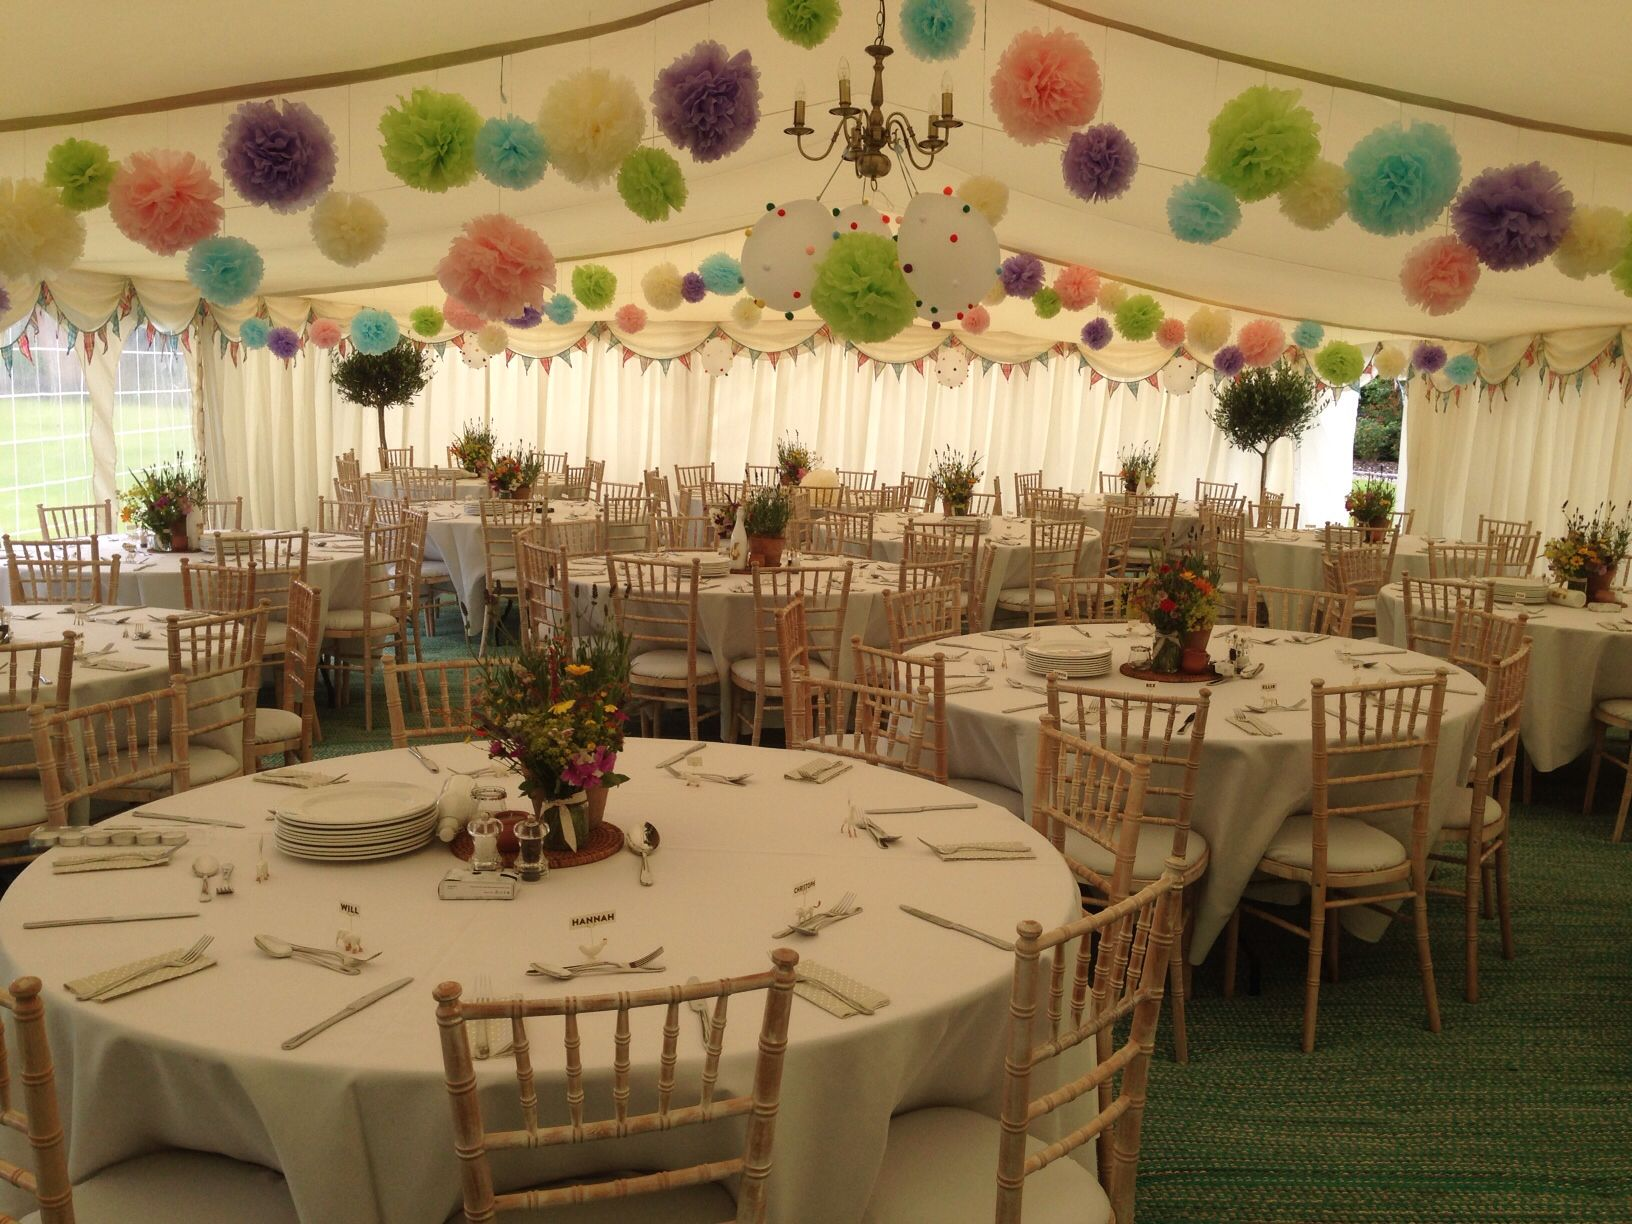 Beckys 21st Birthday Party Marquee Decorations